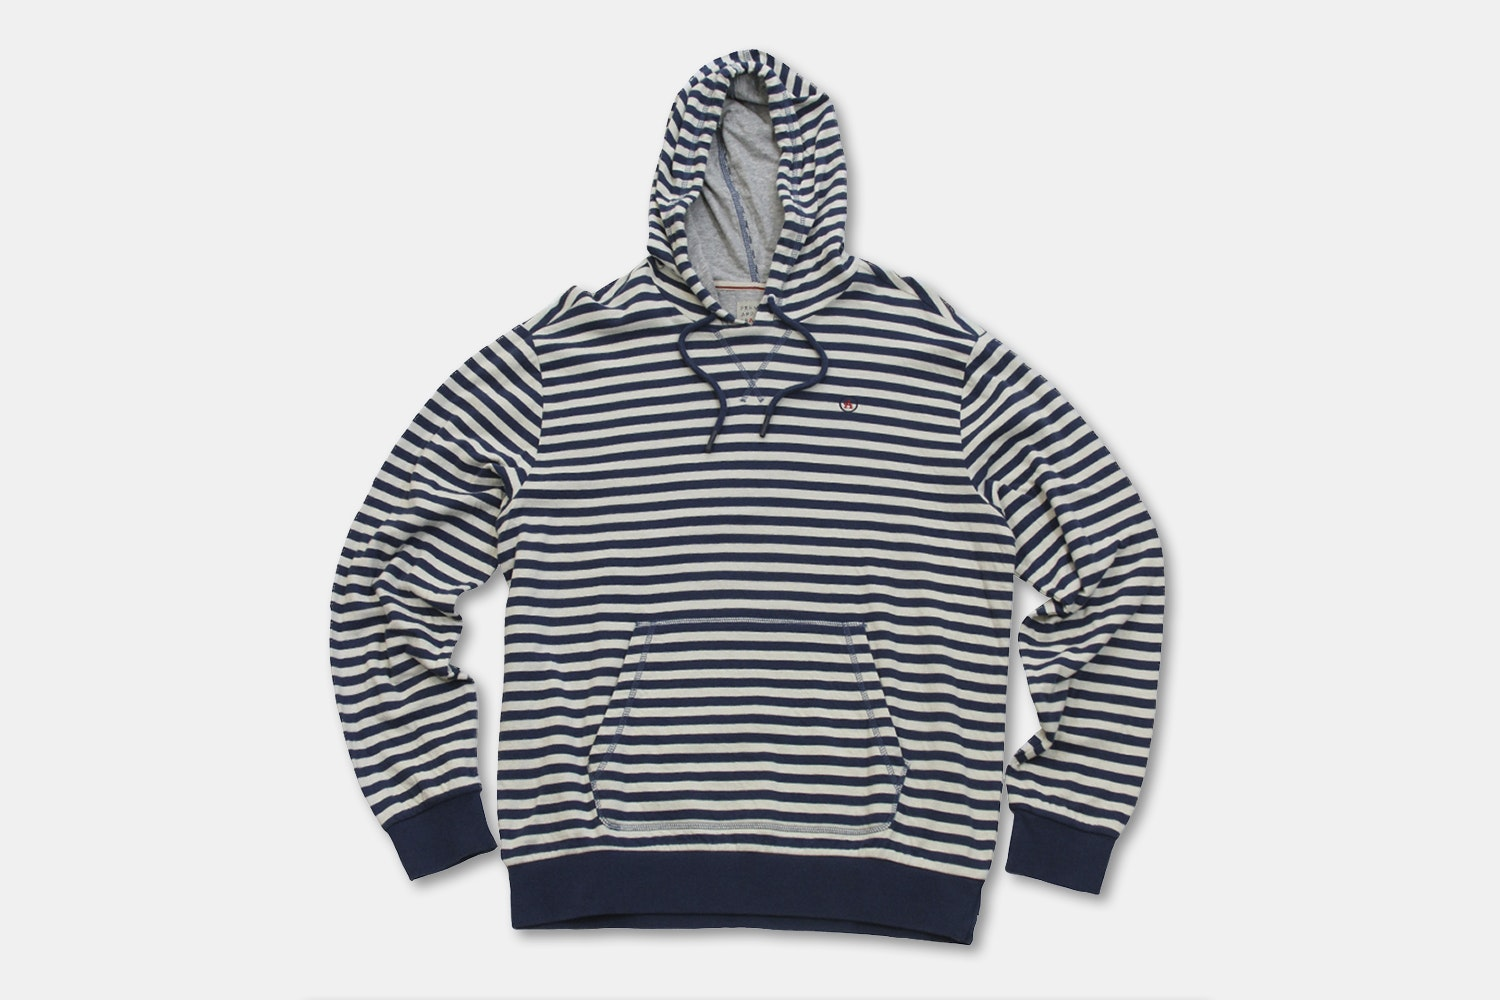 P.A.C. Clothing Crafter Hoodie